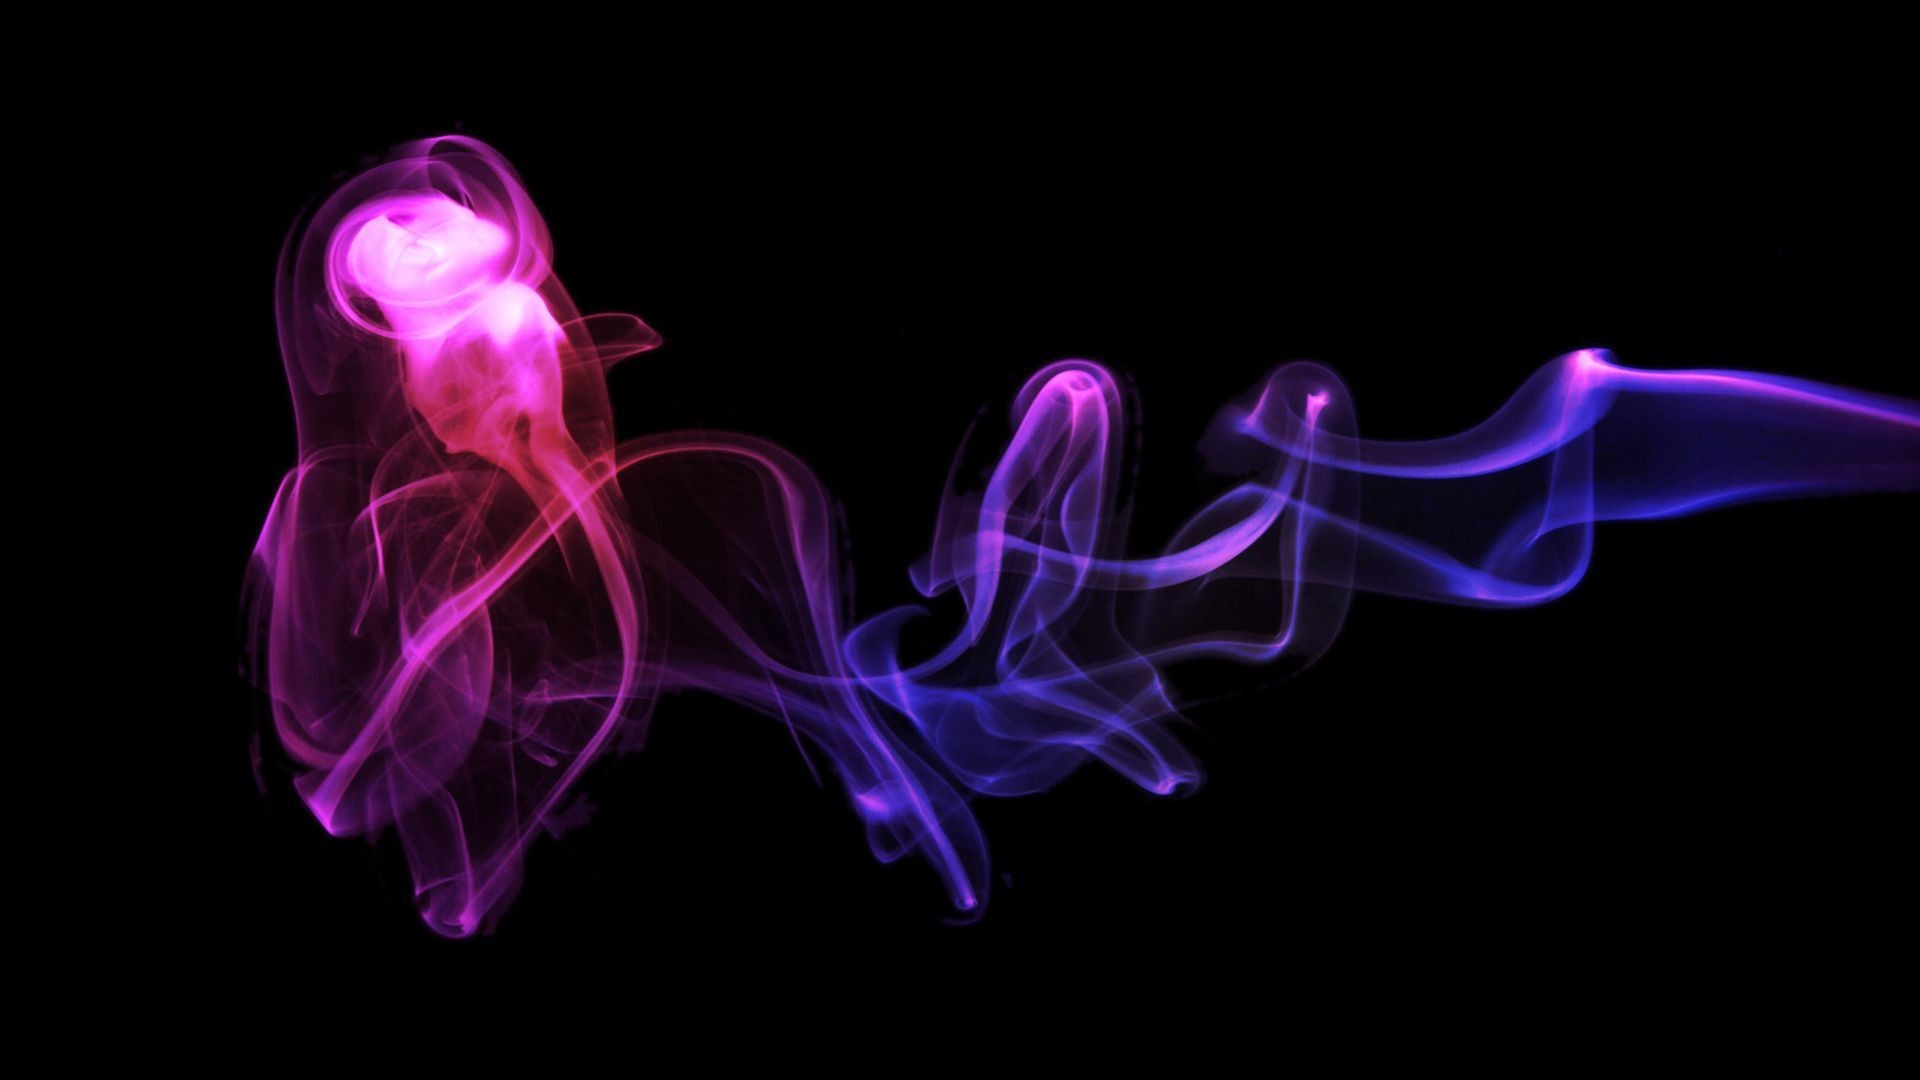 1920x1080 Neon Smoke Wallpaper 5055